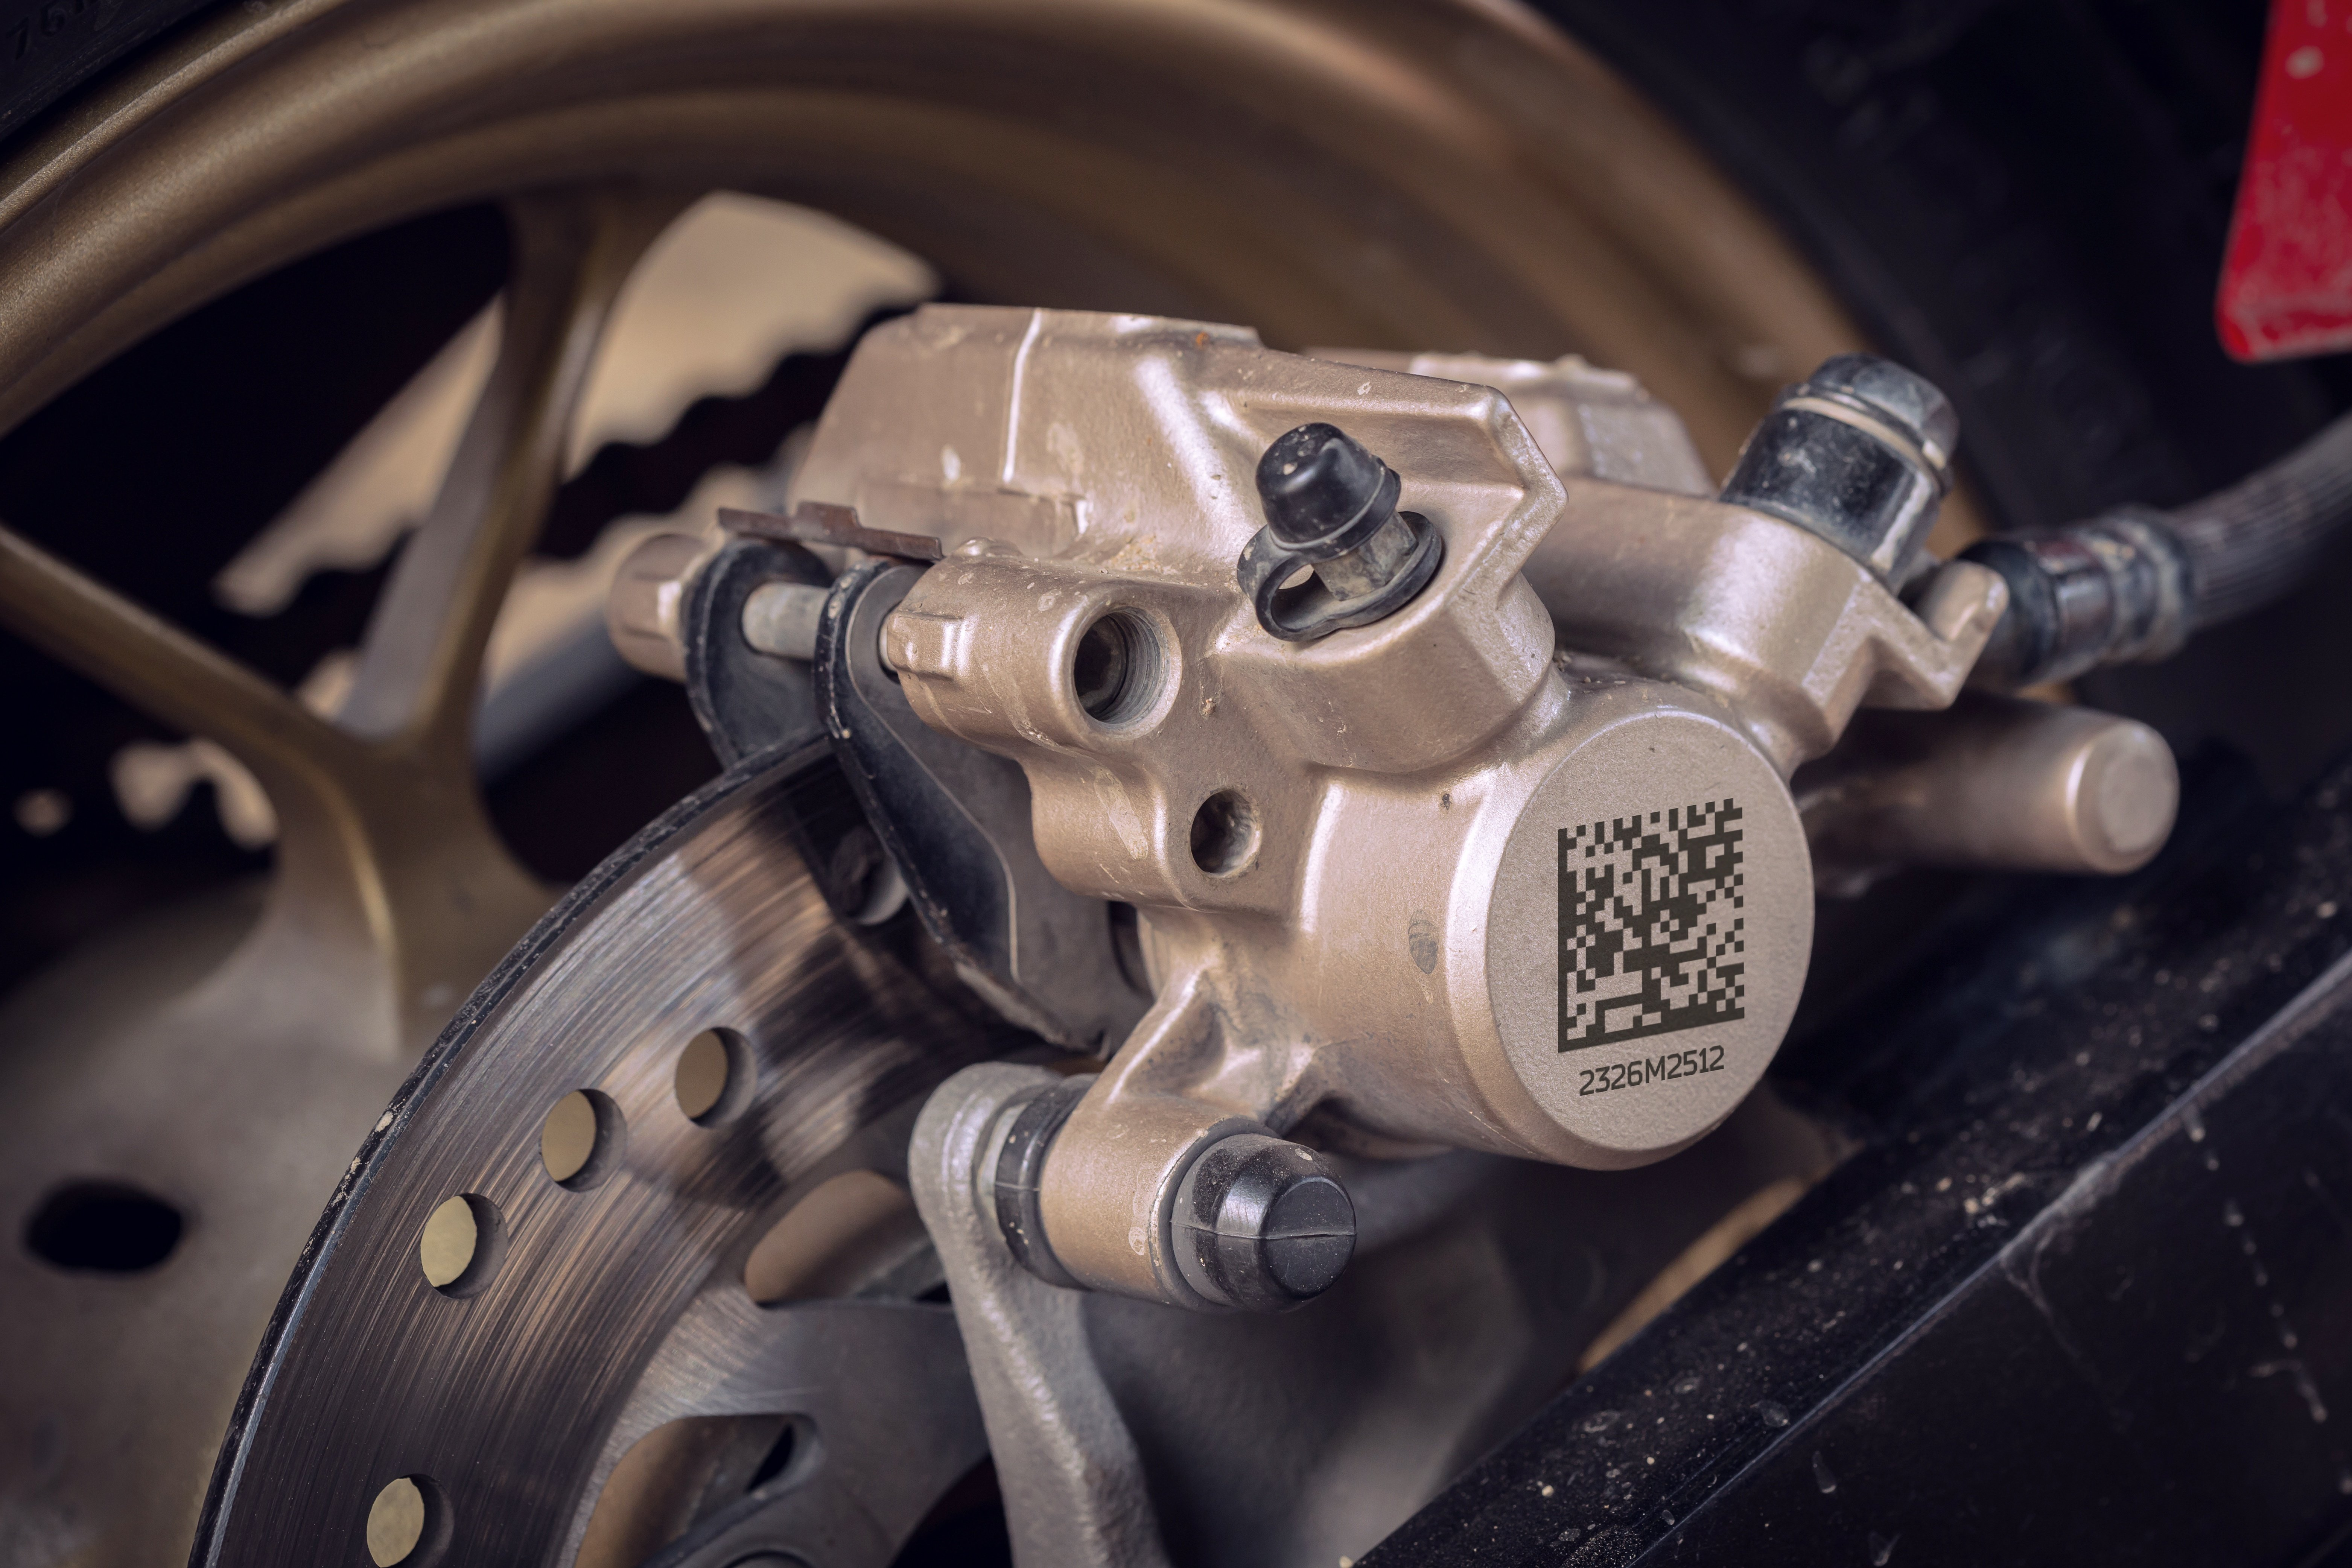 Laser Marking Die Casting with a DMC Laserax